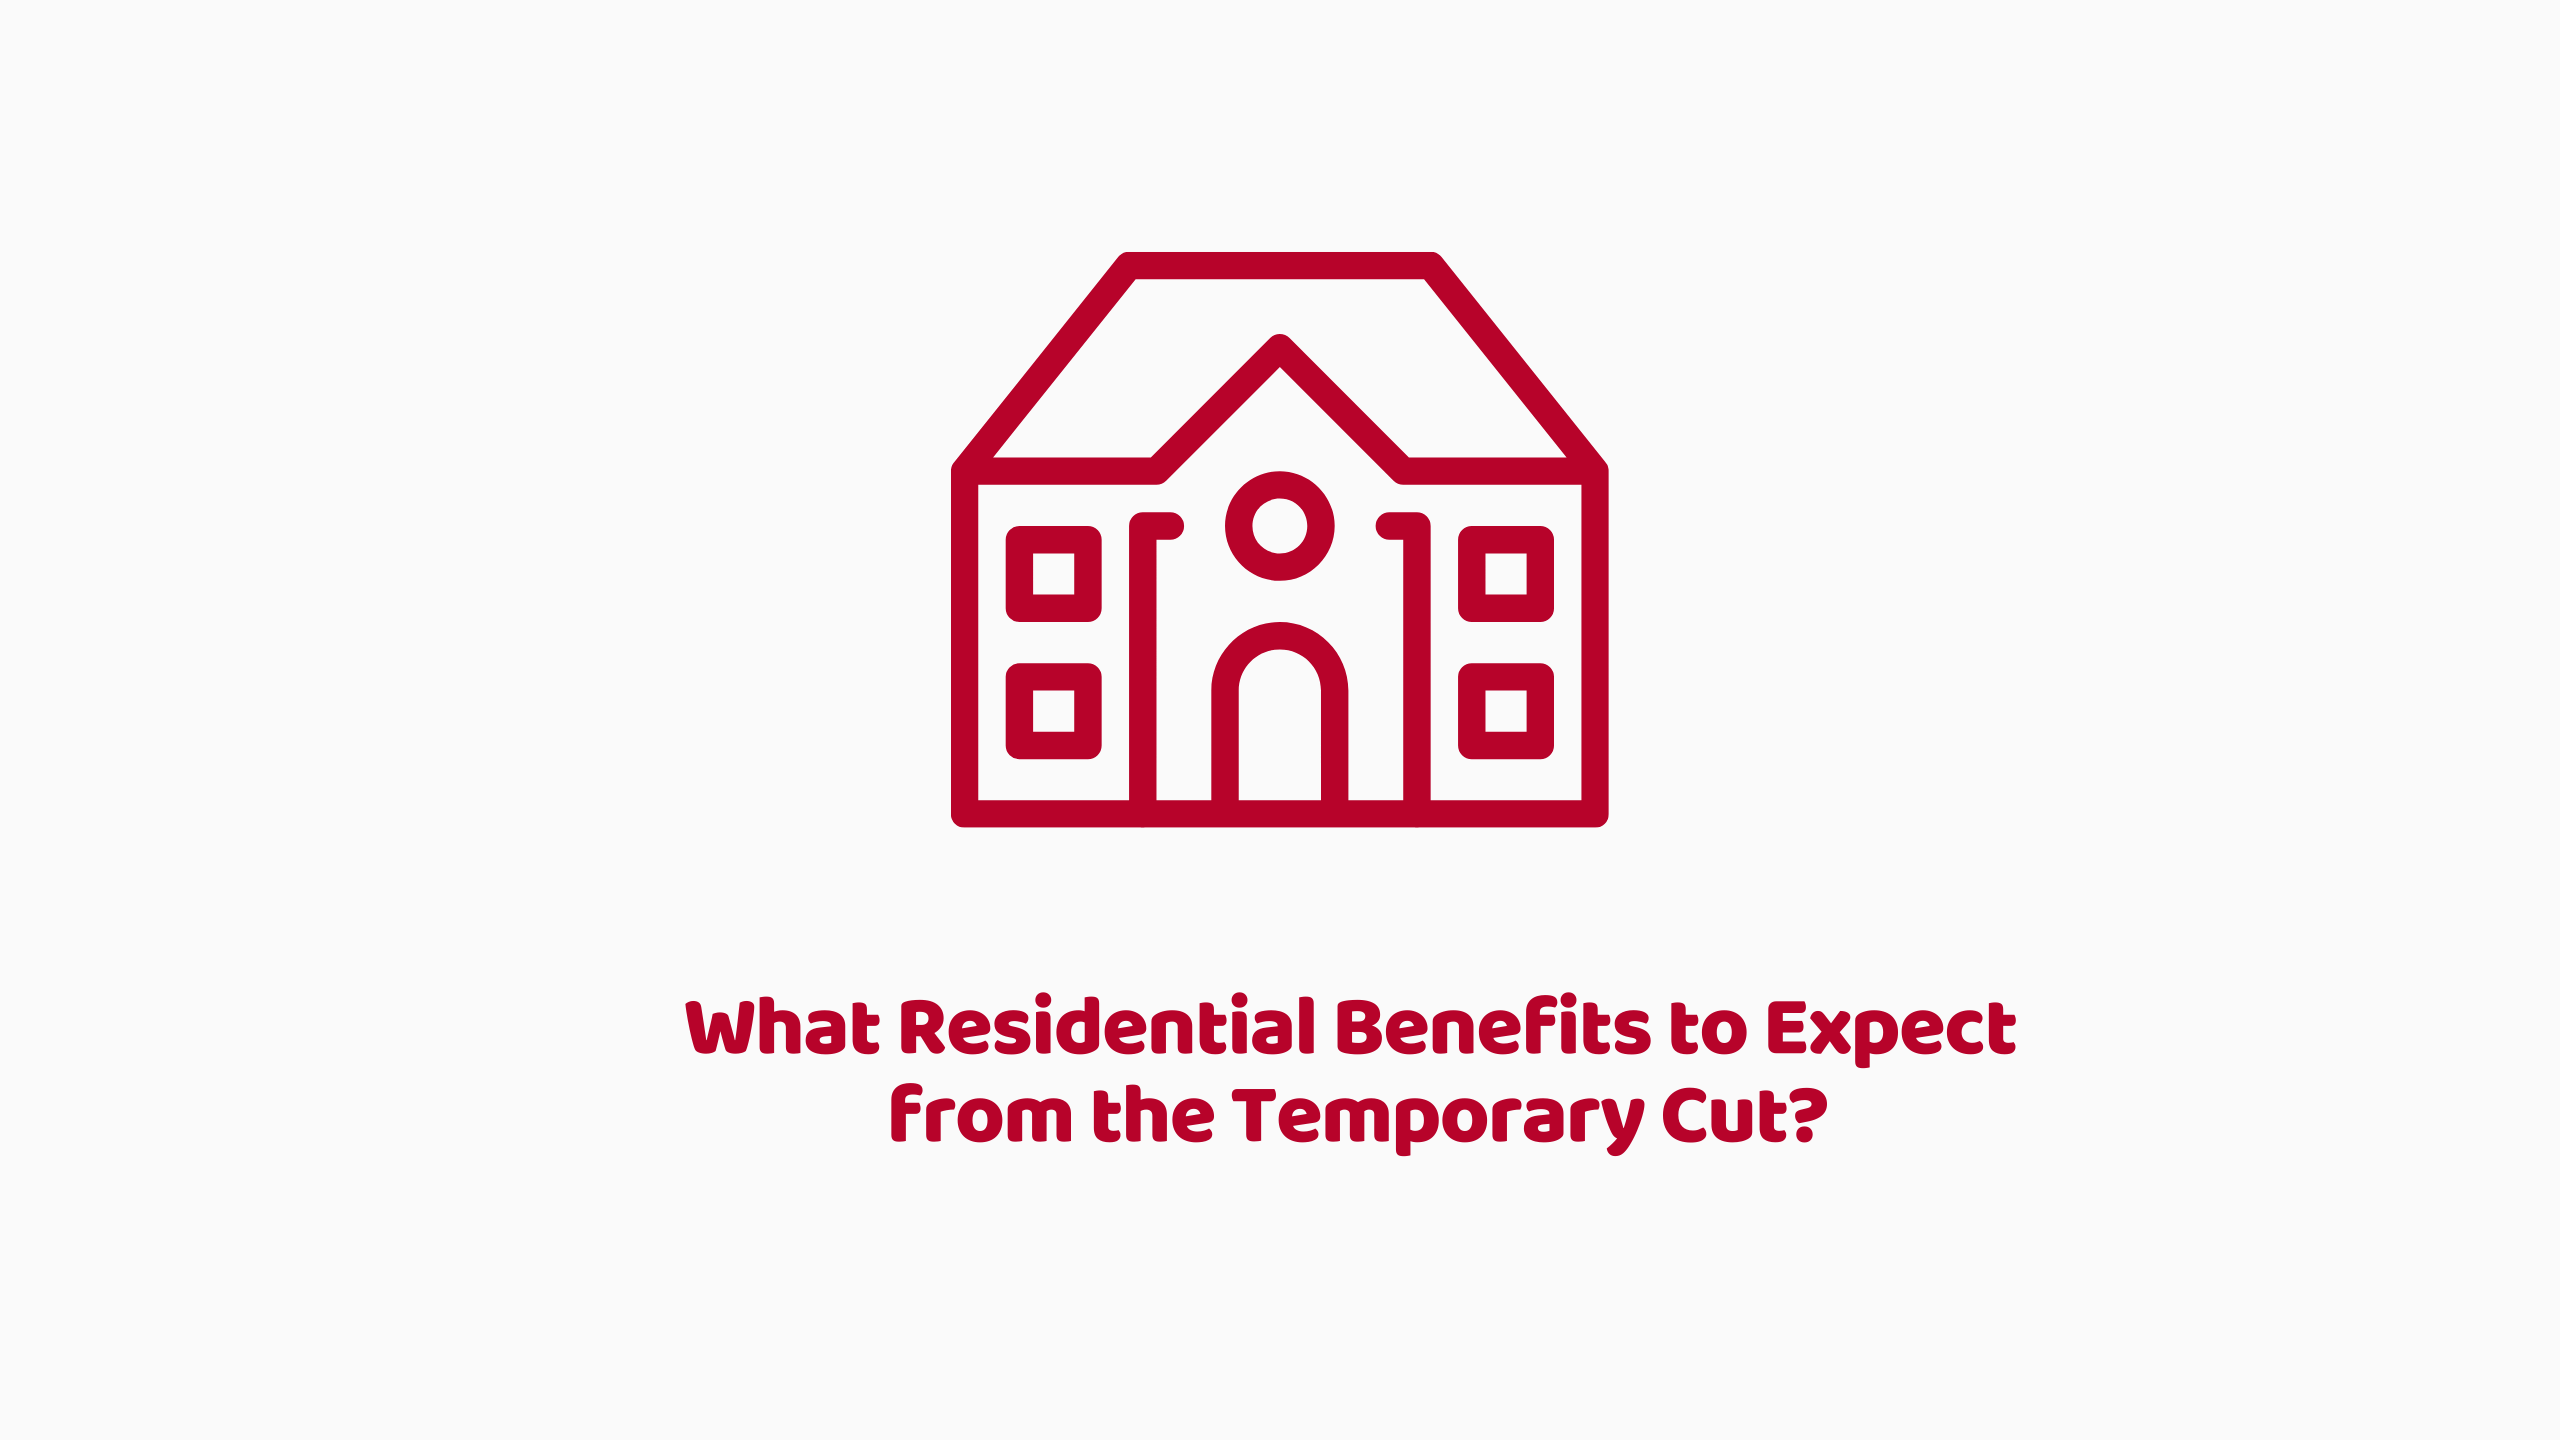 Residential Benefits from SDLT Temporary Cut